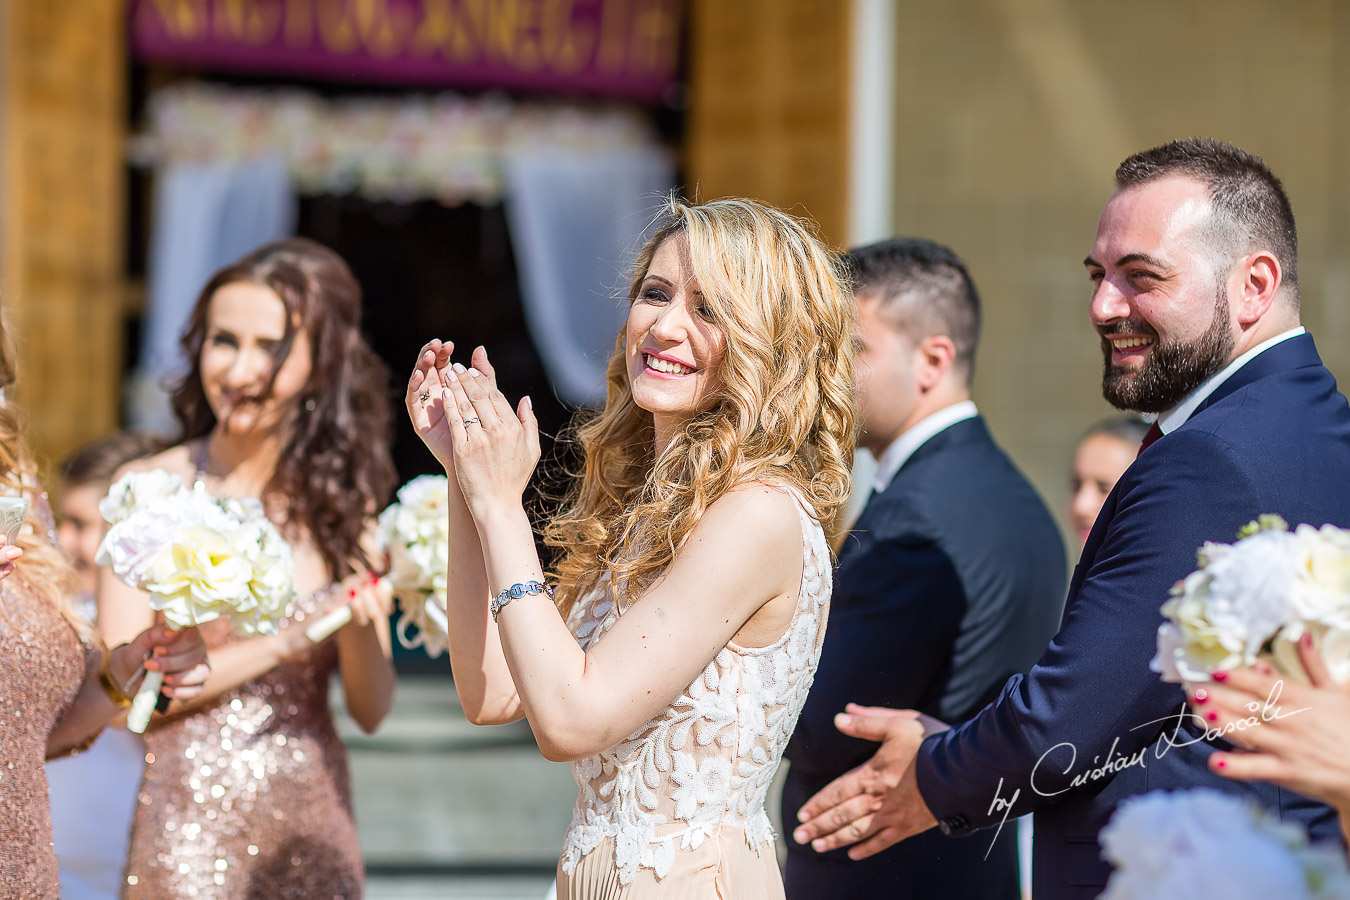 Wedding moments photographed at a wedding in Nicosia by Cyprus Wedding Photographer Cristian Dascalu